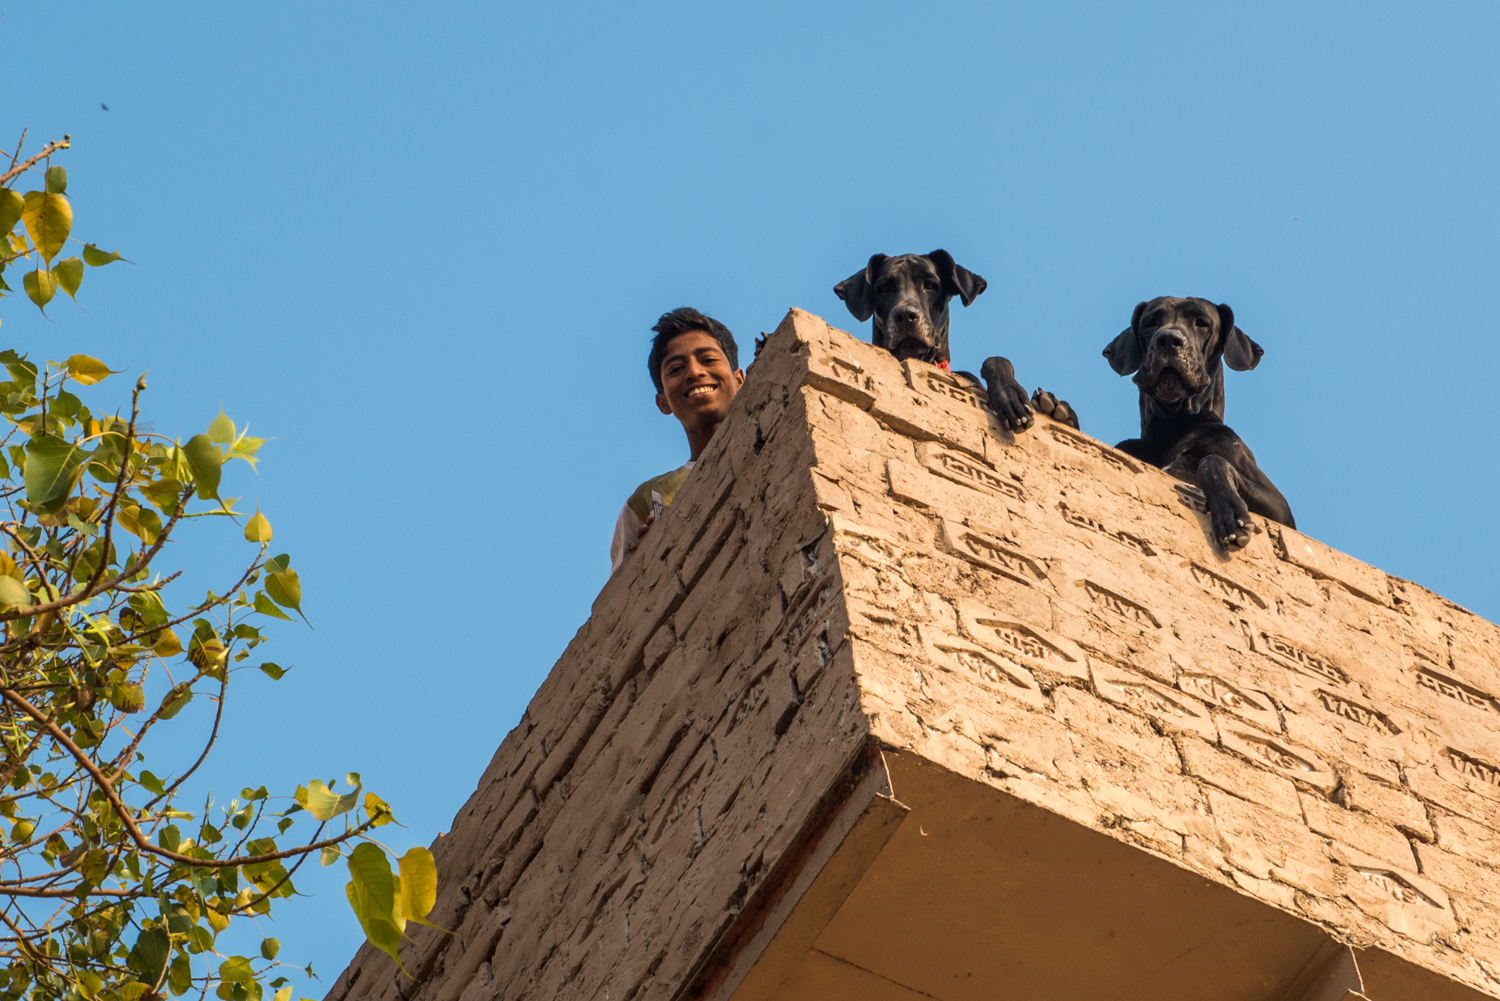 A boy and his two dogs playfully look down below from the rooftop of their home - Uttar Pradesh, India.